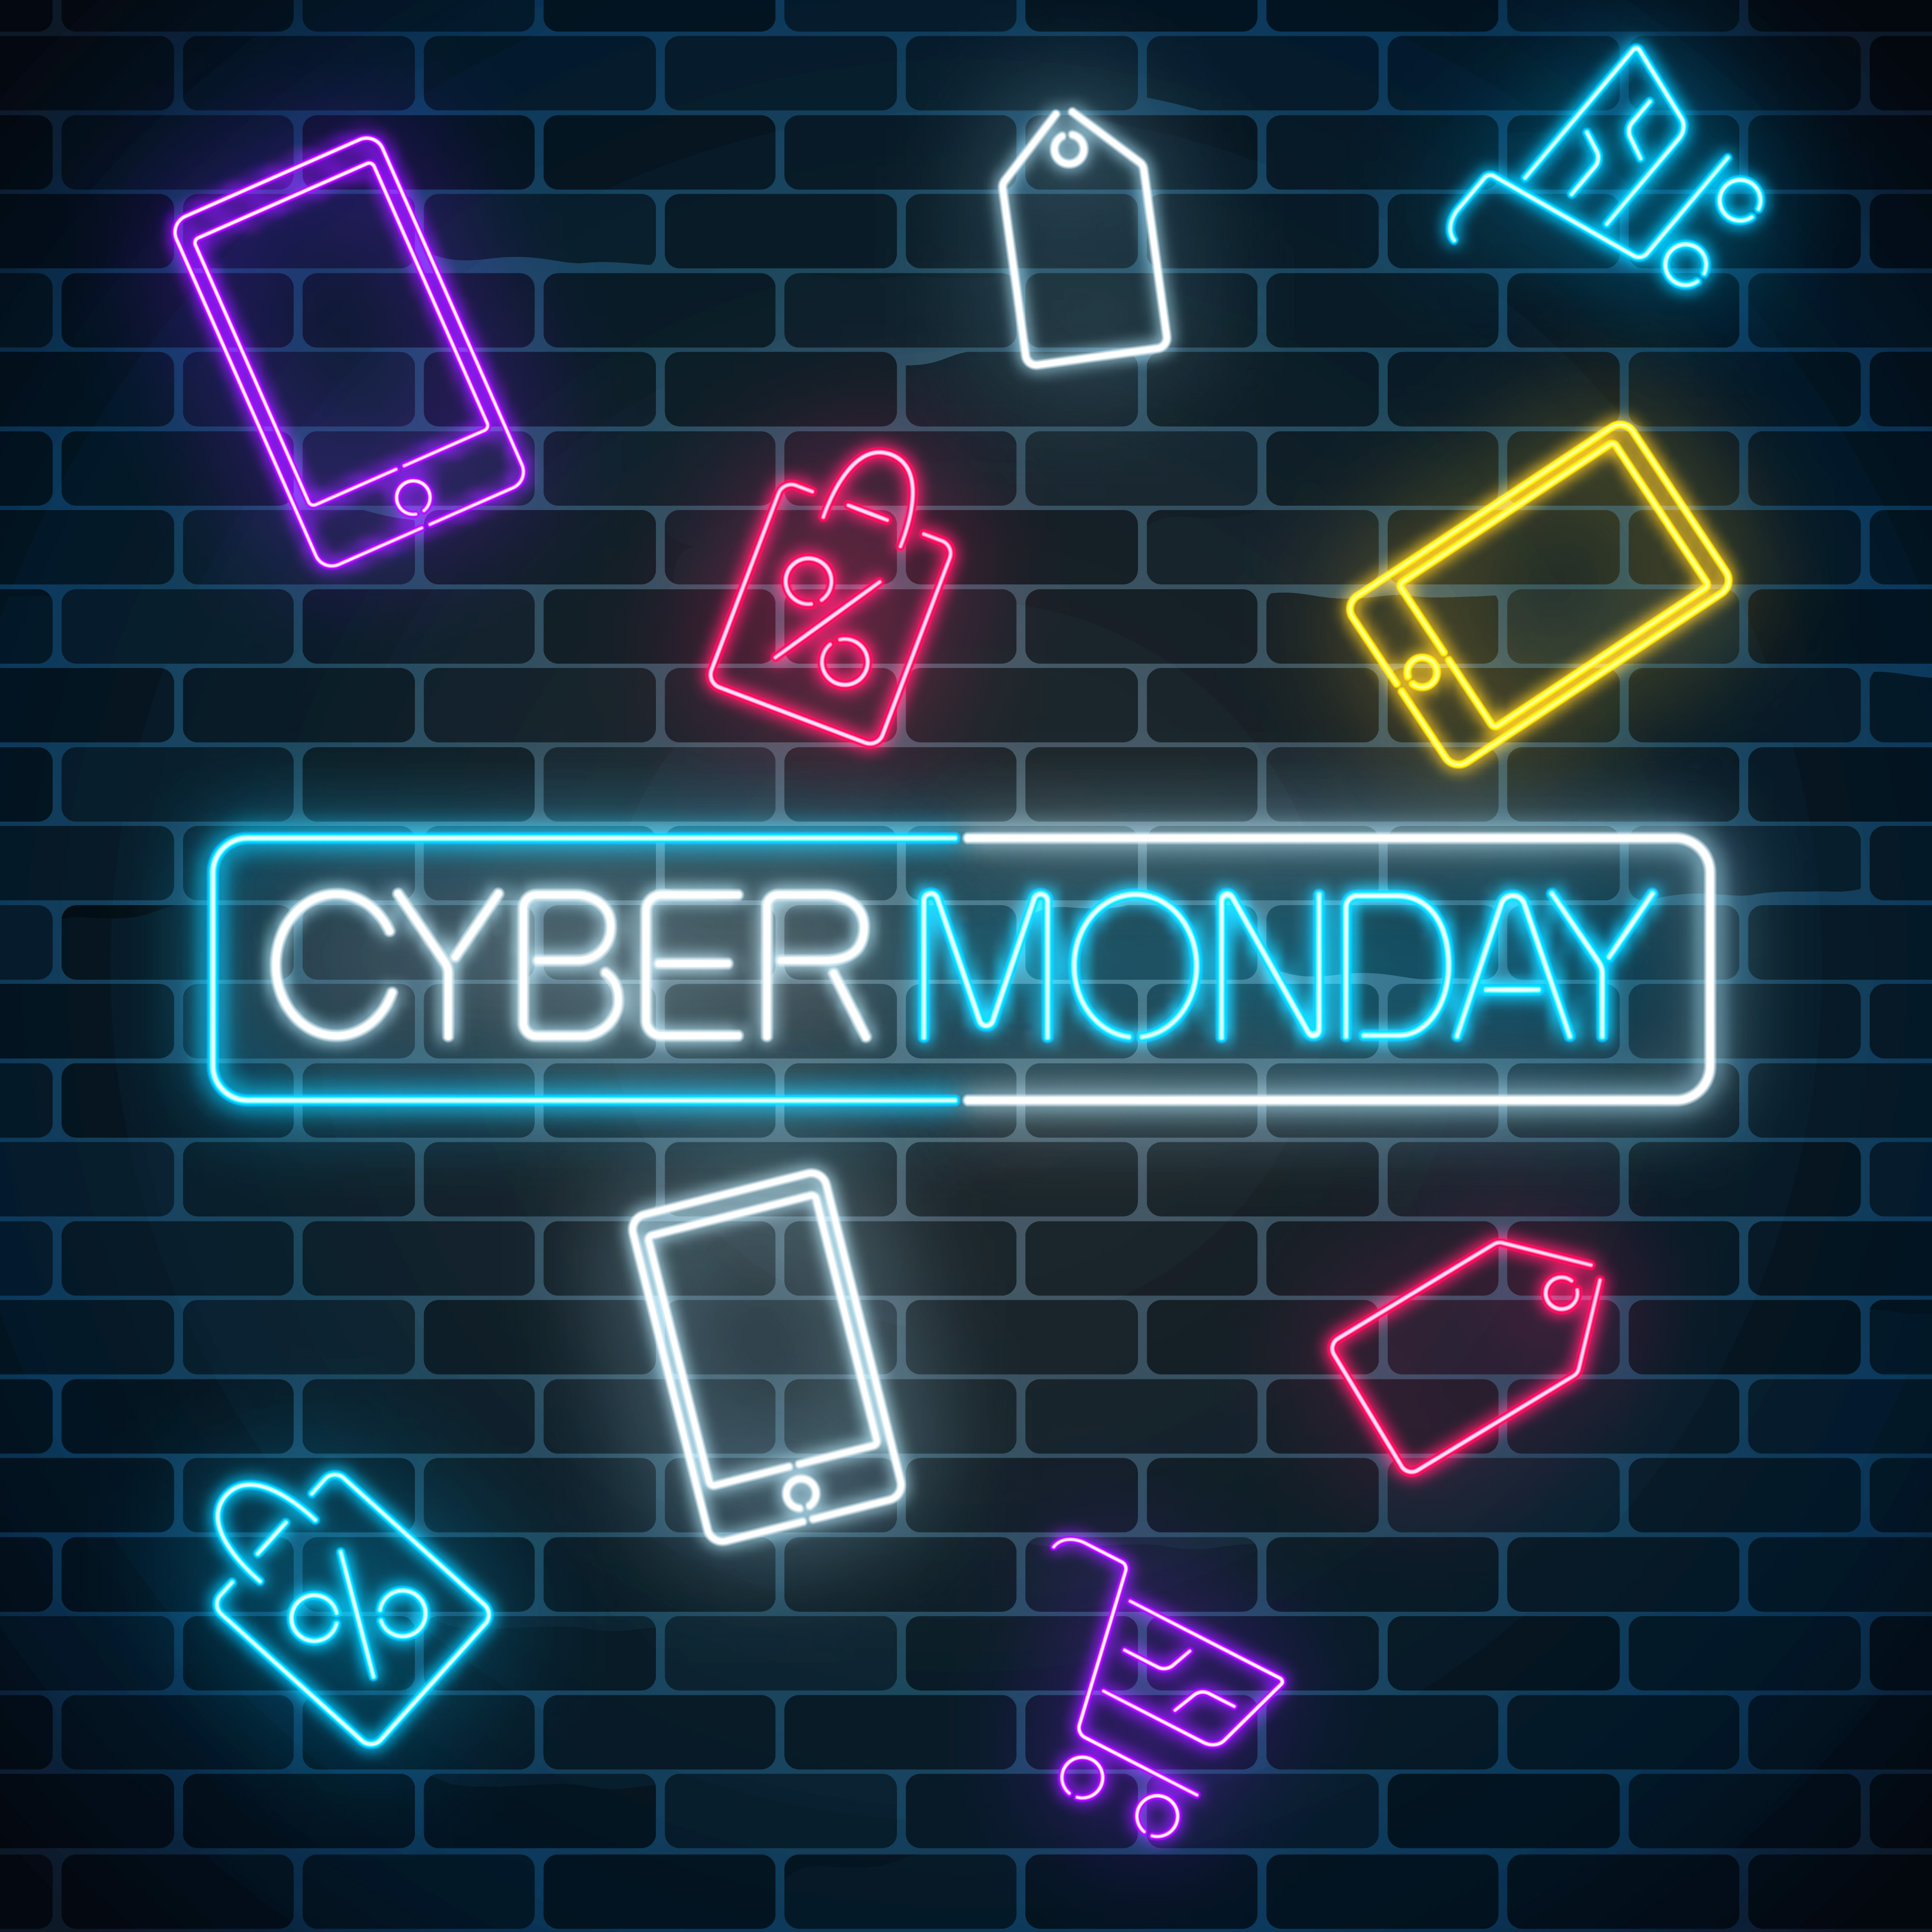 Smartphone shopping: Avoid the blues on Cyber Monday